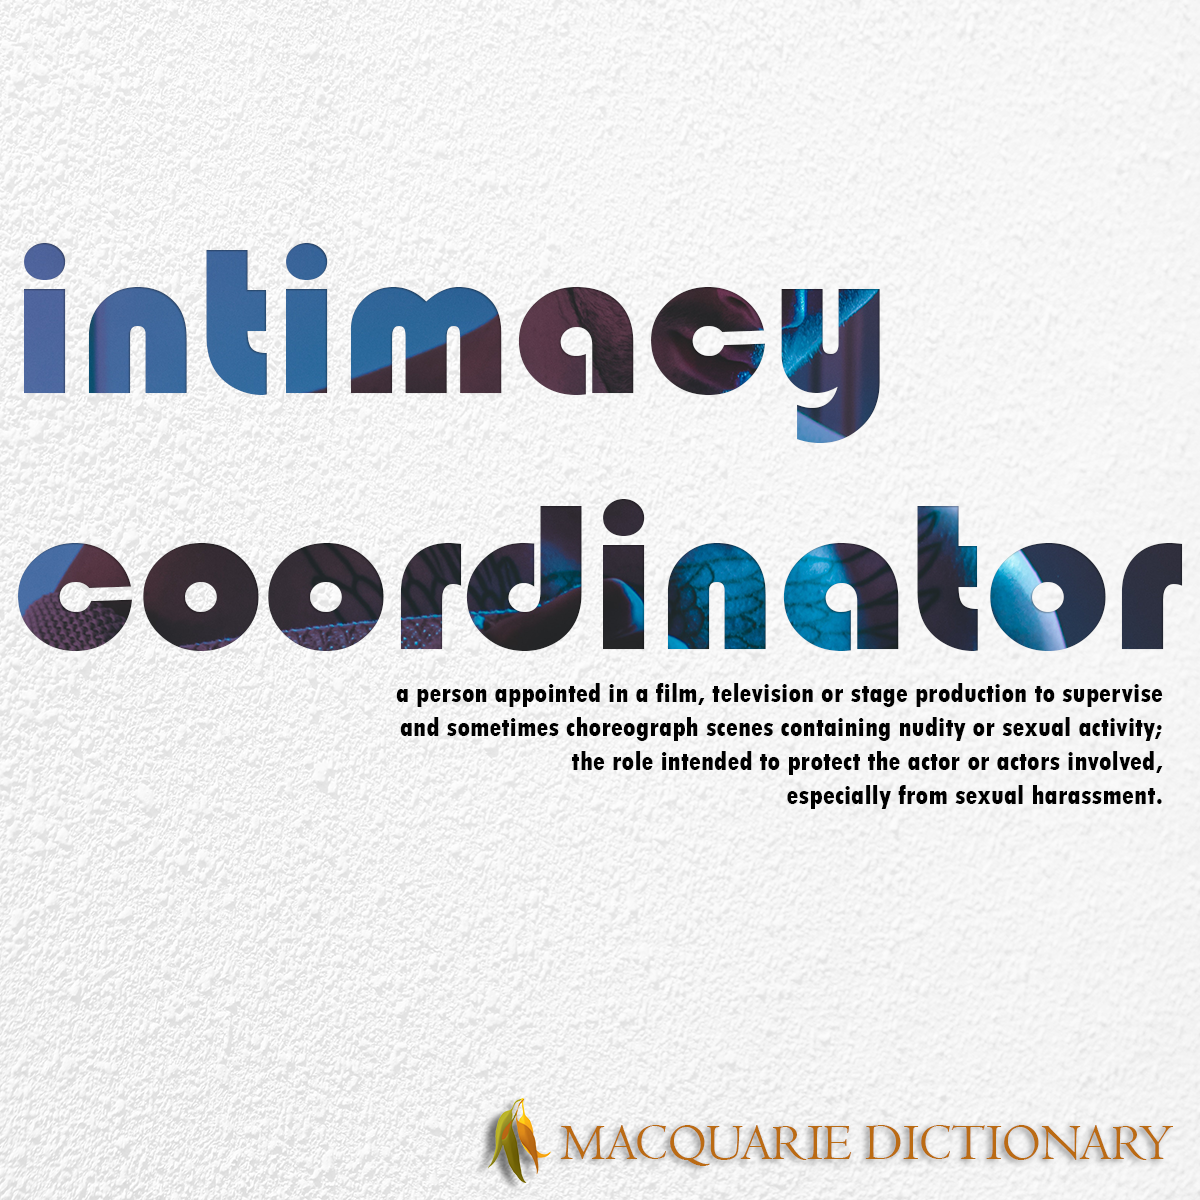 Image of Macquarie Dictionary Word of the Year - intimacy coordinator - a person appointed in a film, television or stage production to supervise and sometimes choreograph scenes containing nudity or sexual activity, the role intended to protect the actor or actors involved, especially from sexual harassment.